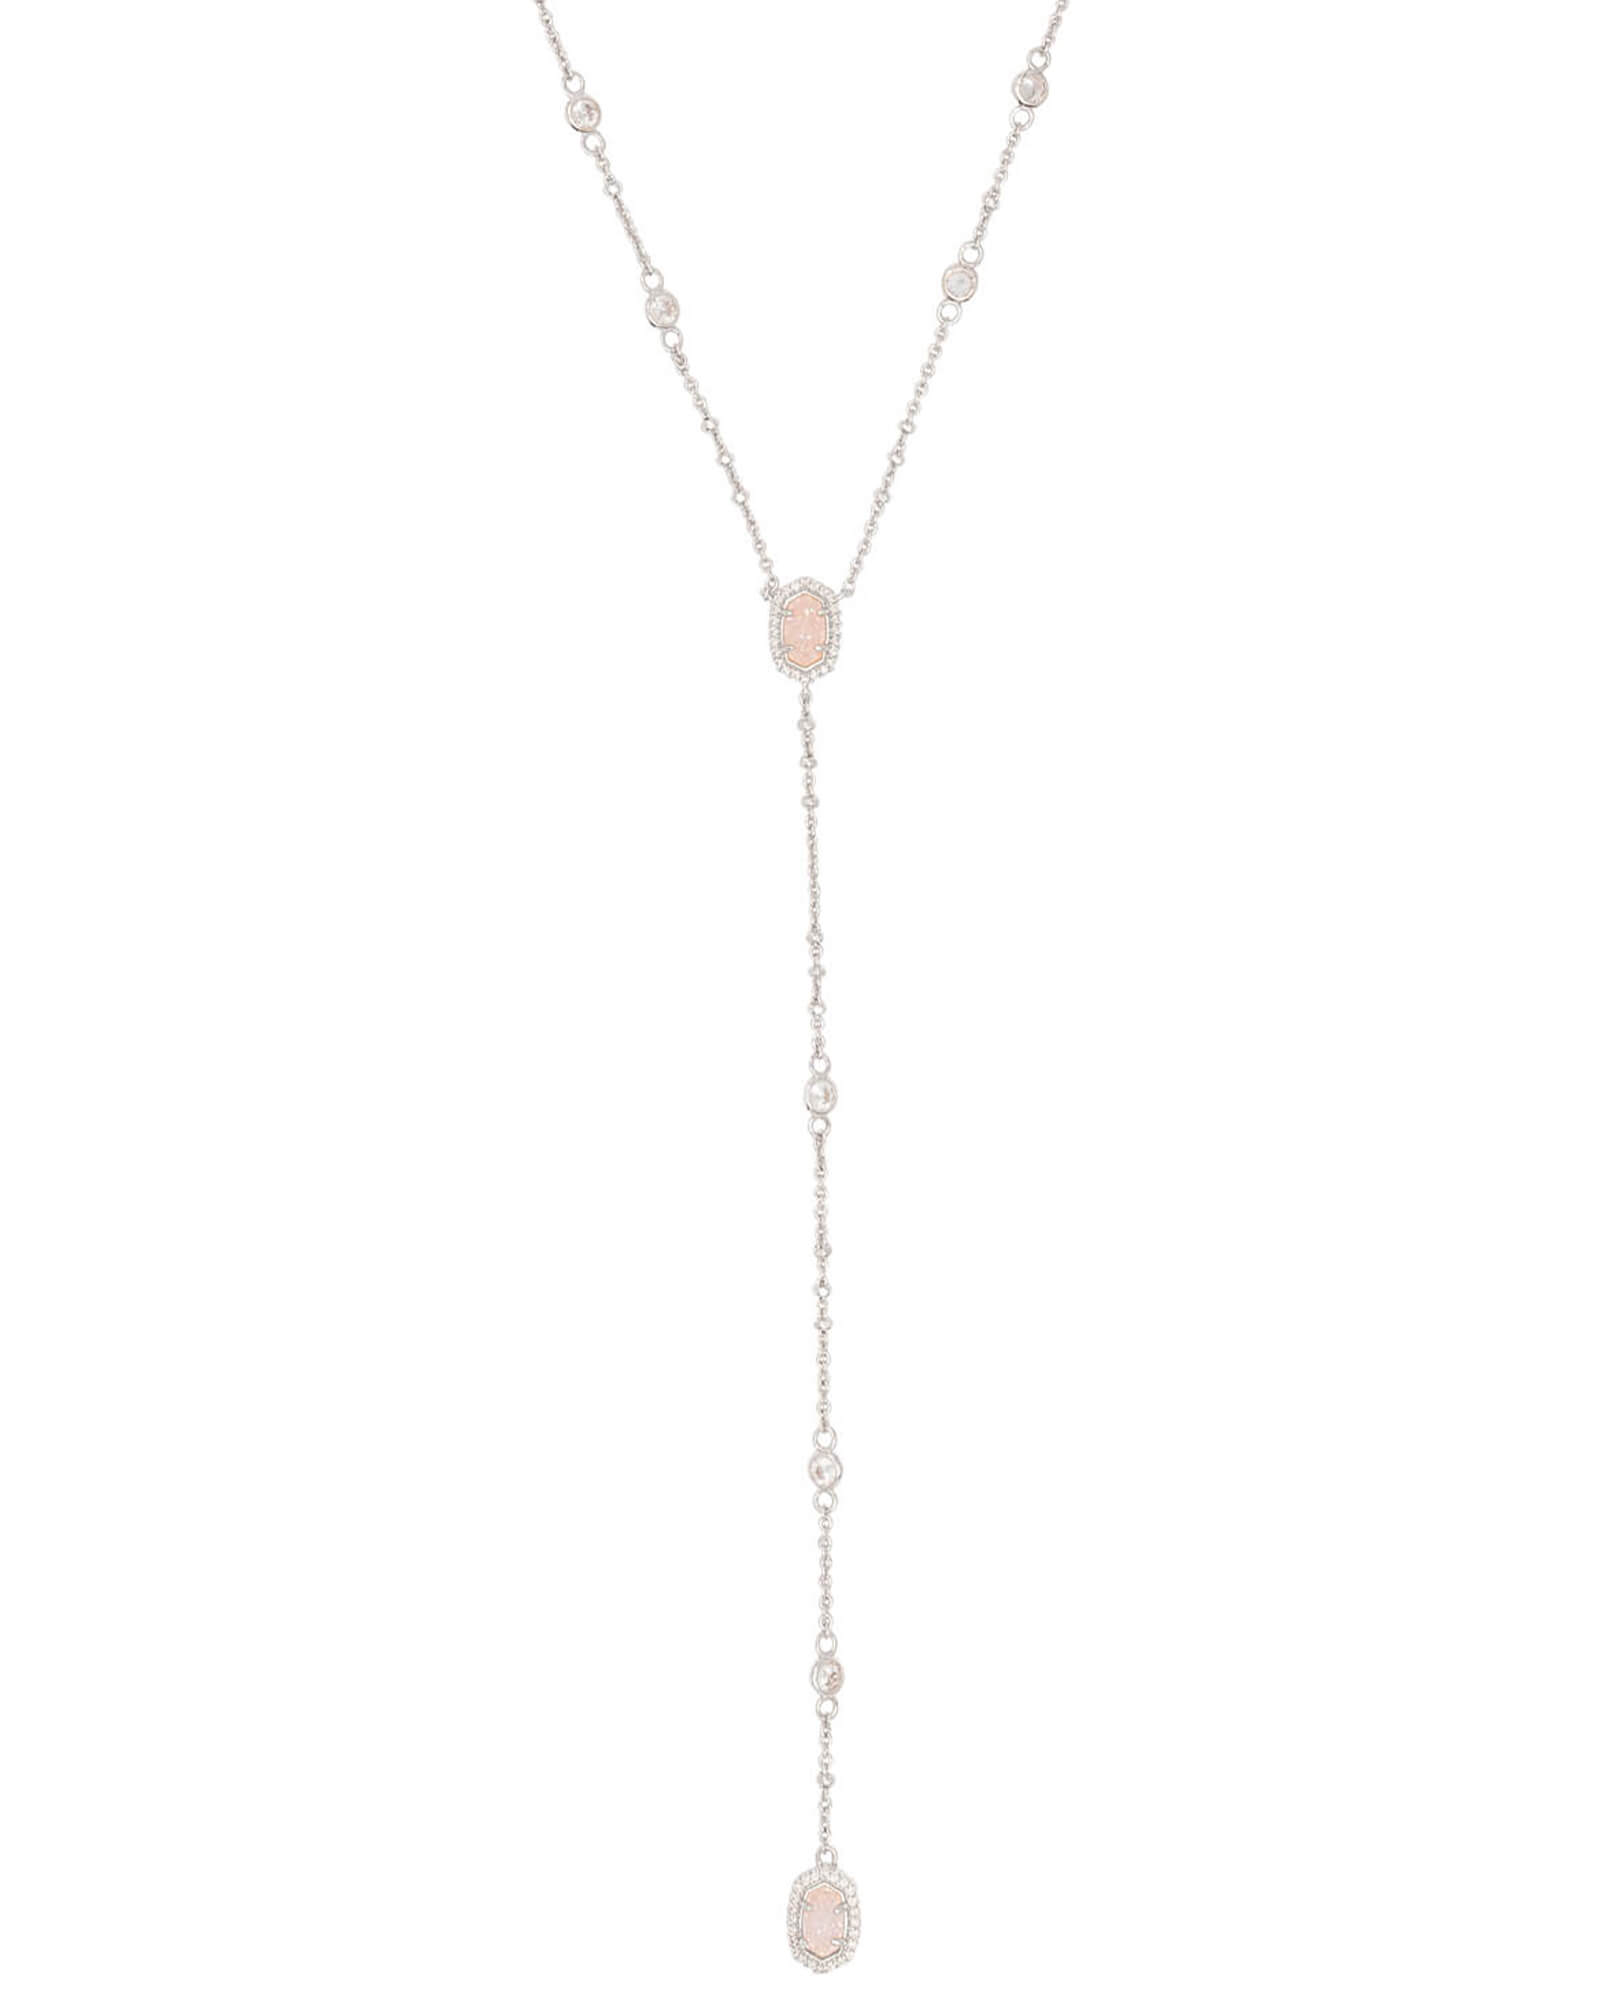 Kendra Scott Claudia Lariat Necklace in Silver